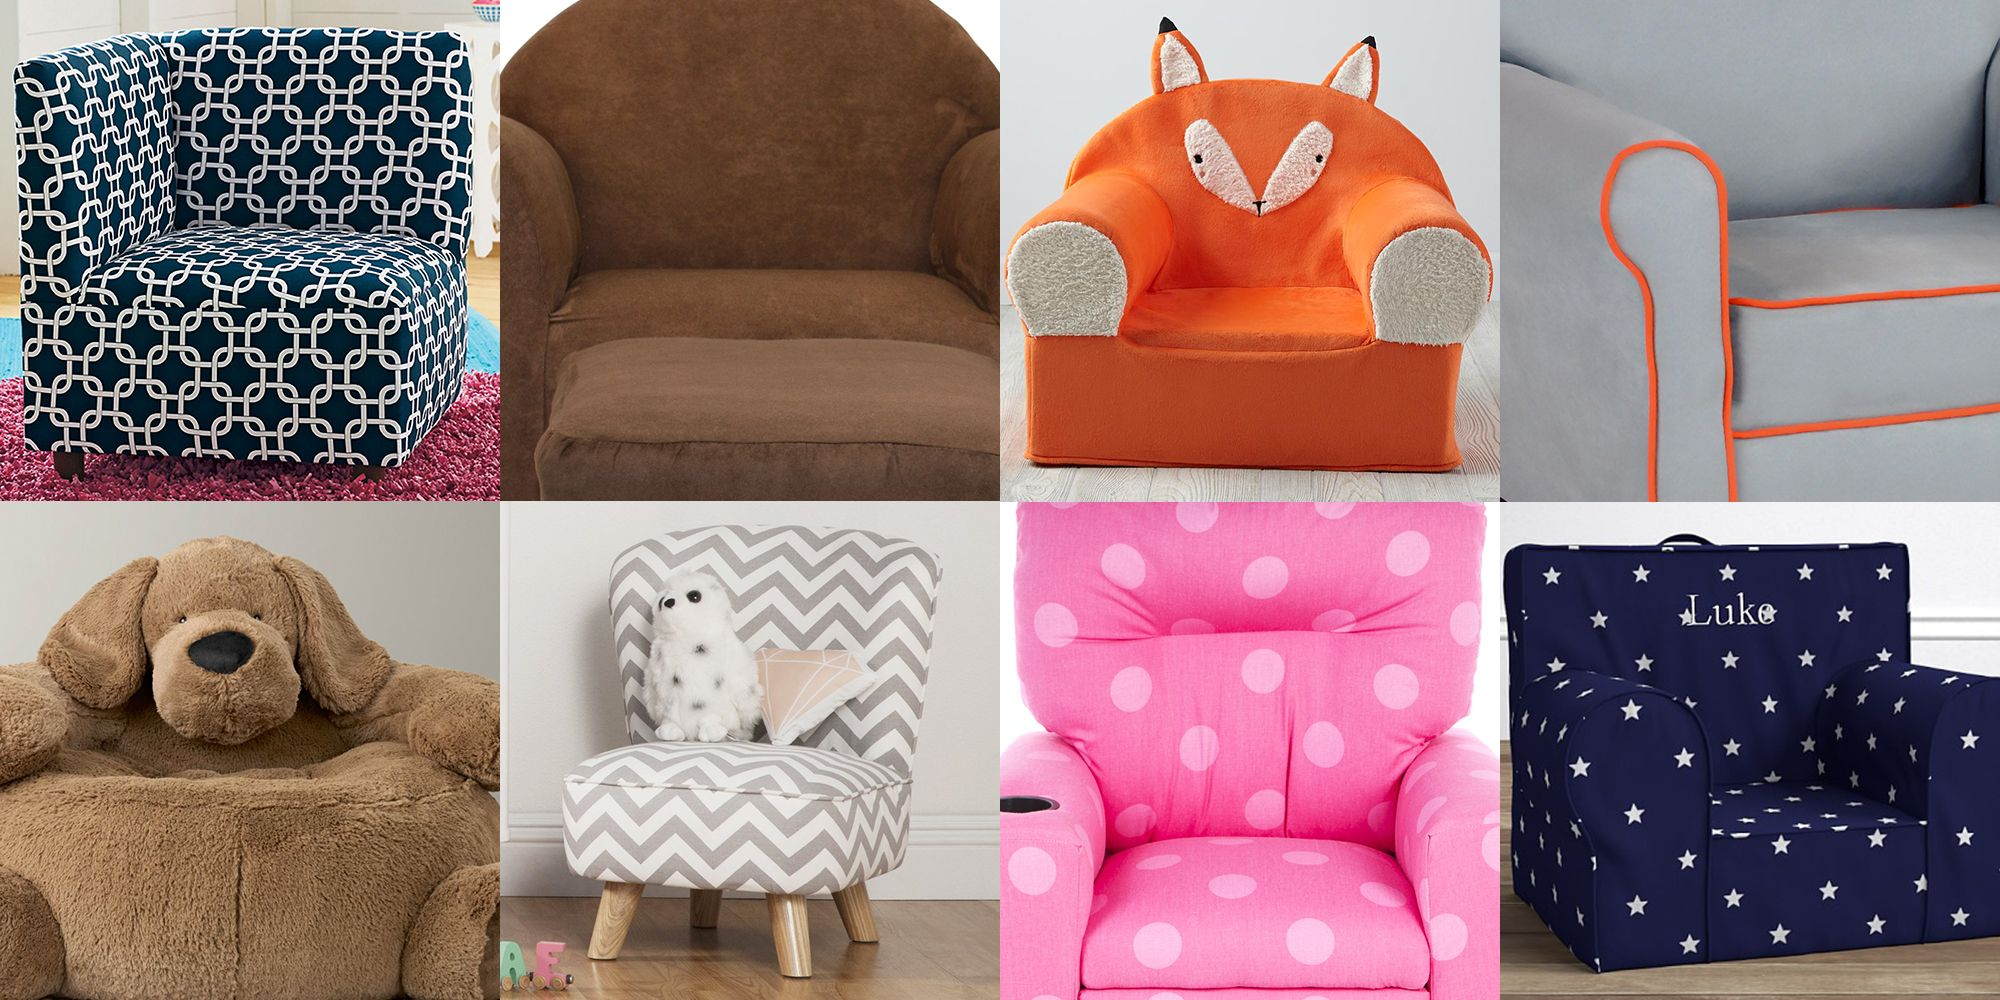 11 Best Kids Upholstered Chairs in 2018 - Upholstered Chairs ...